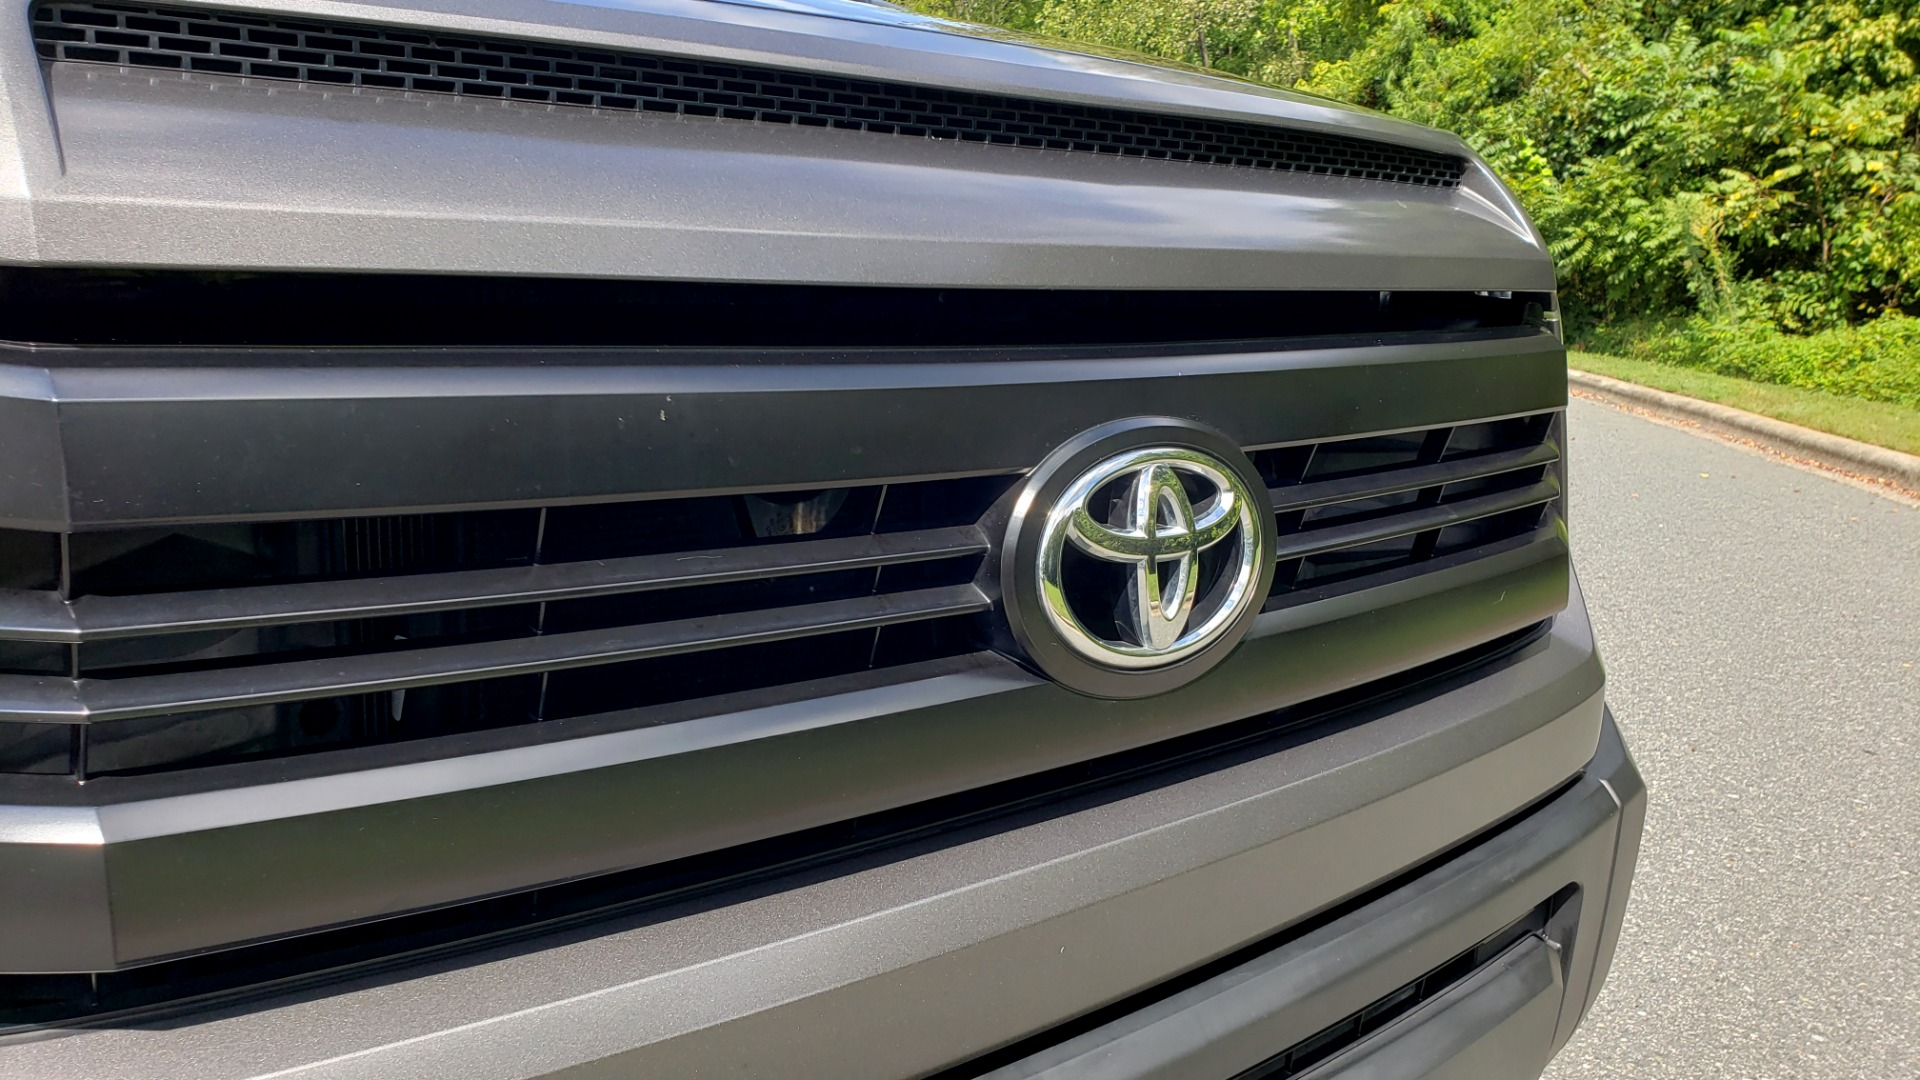 Used 2017 Toyota TUNDRA SR DOUBLECAB / 4WD / 6.5 BED / V8 / AUTO / REARVIEW for sale $33,995 at Formula Imports in Charlotte NC 28227 17